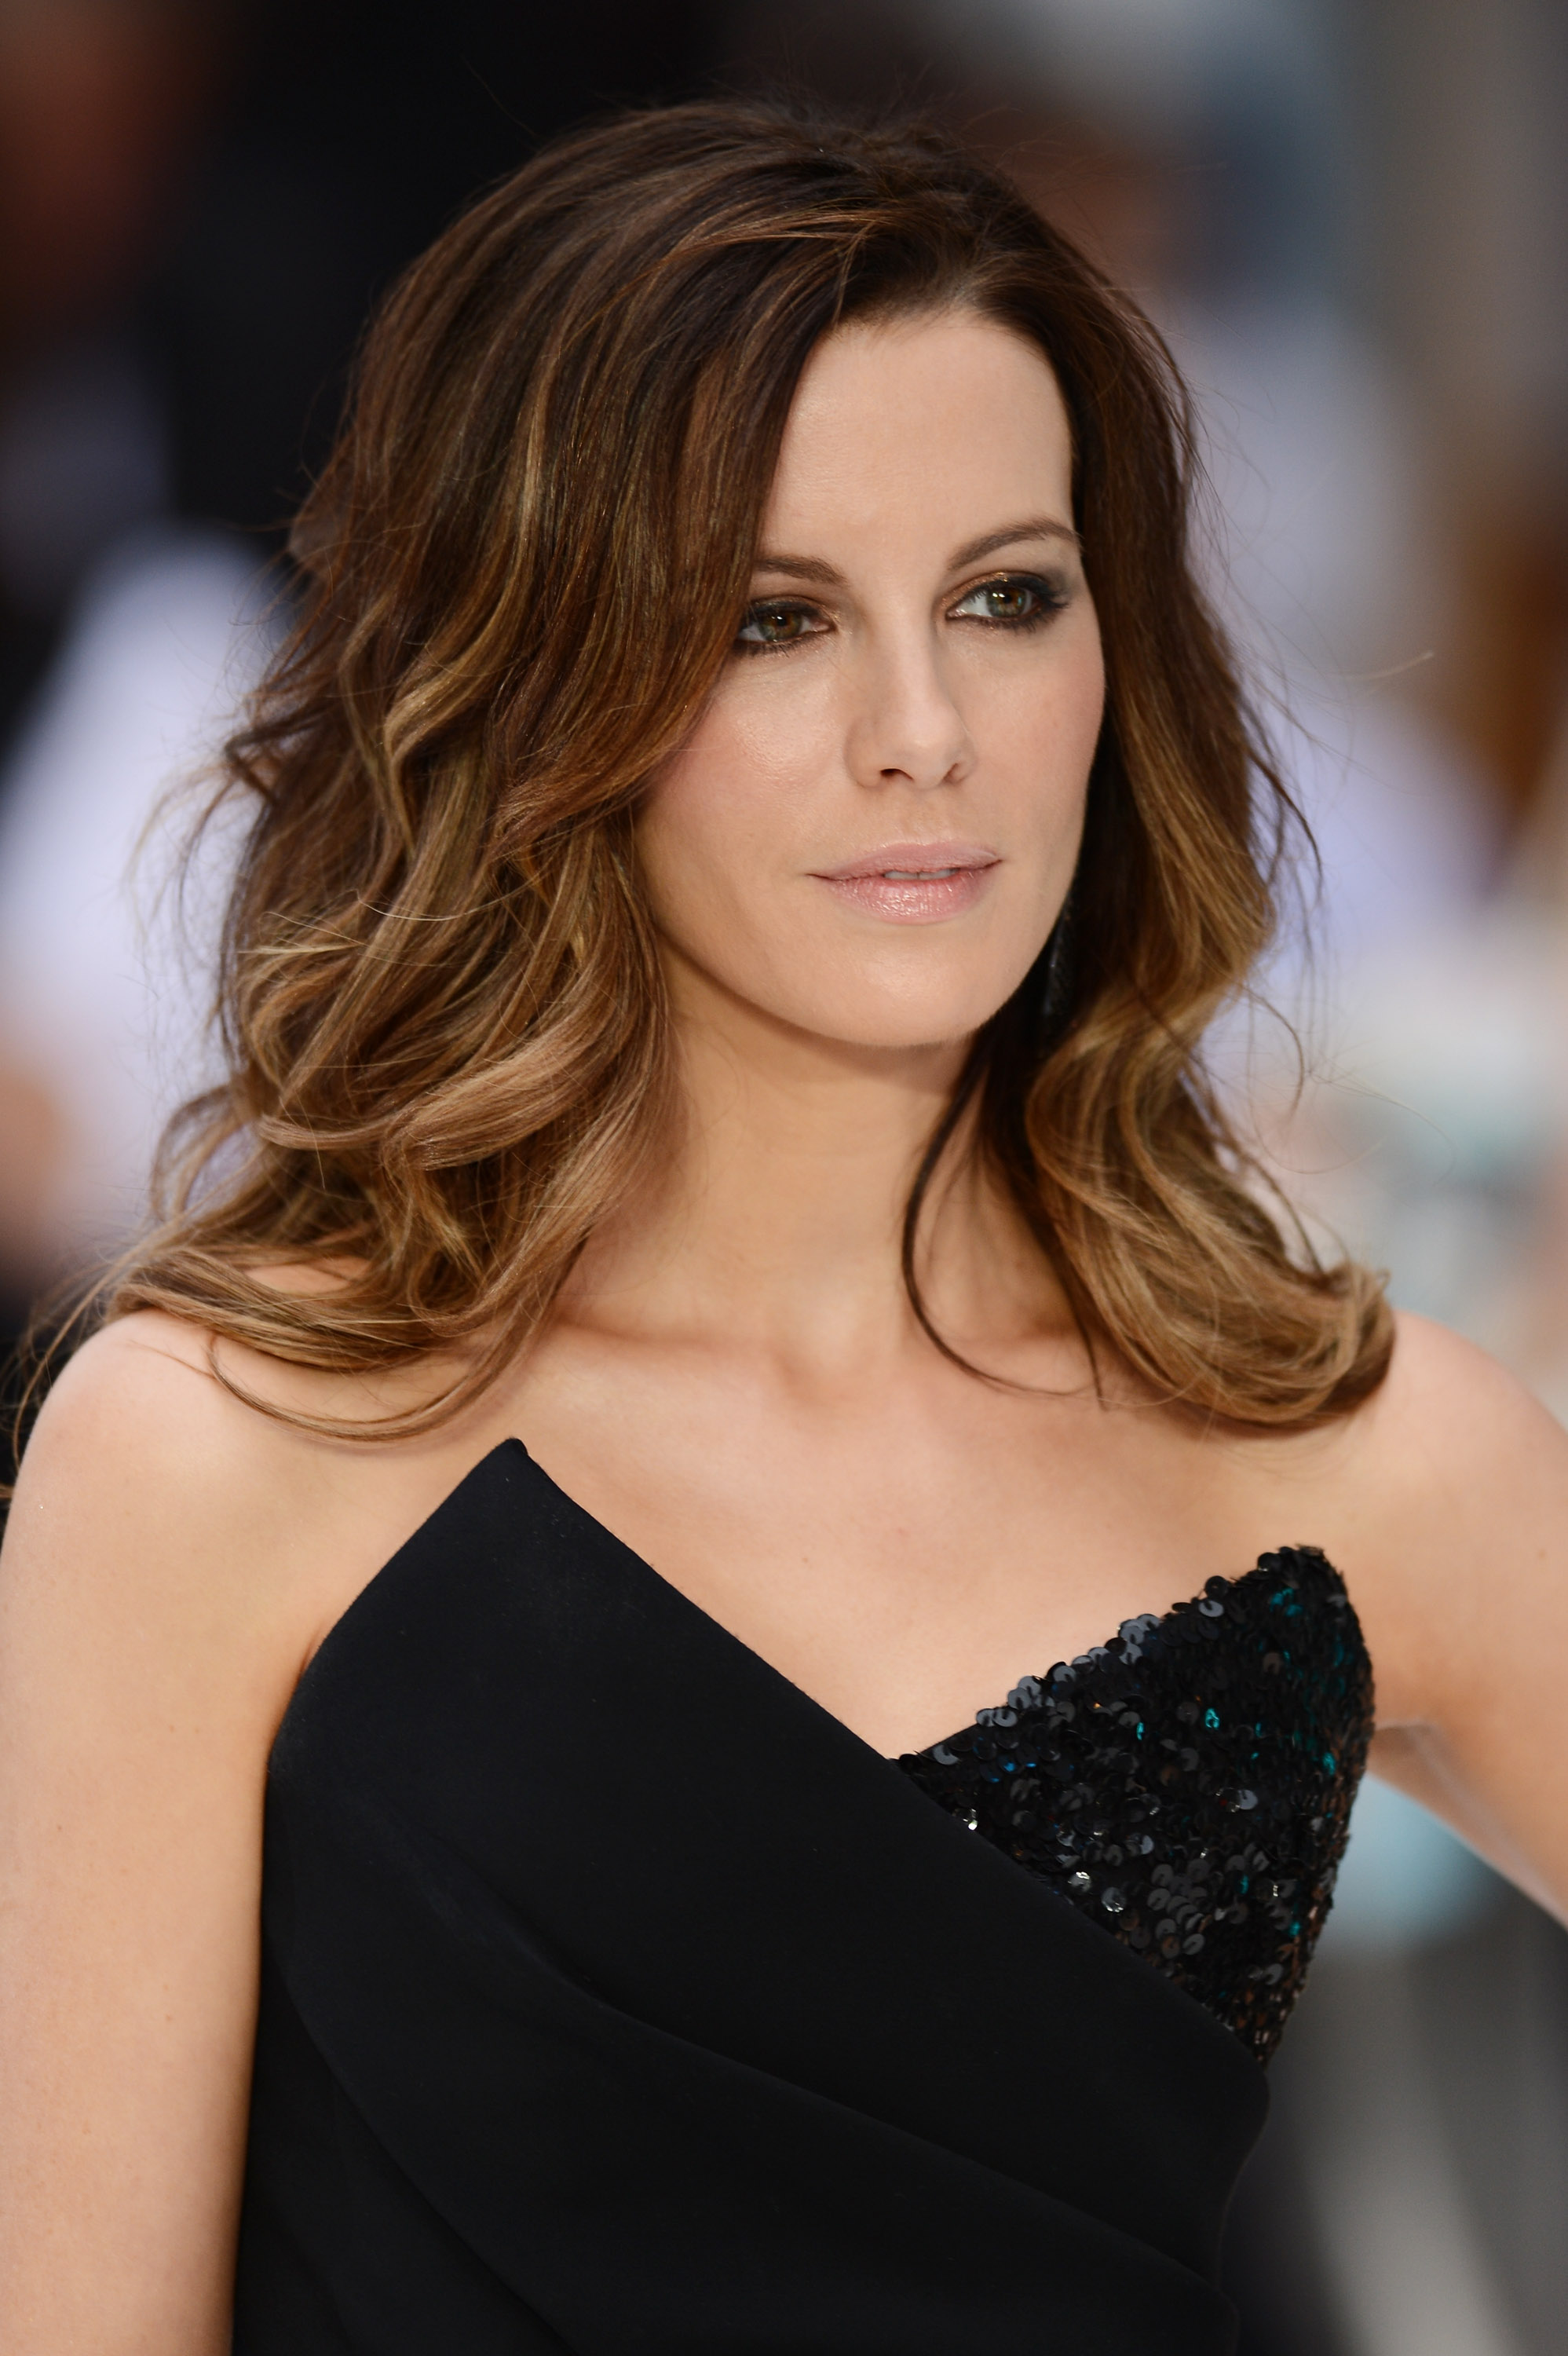 Kate Beckinsale sported Kate Beckinsale